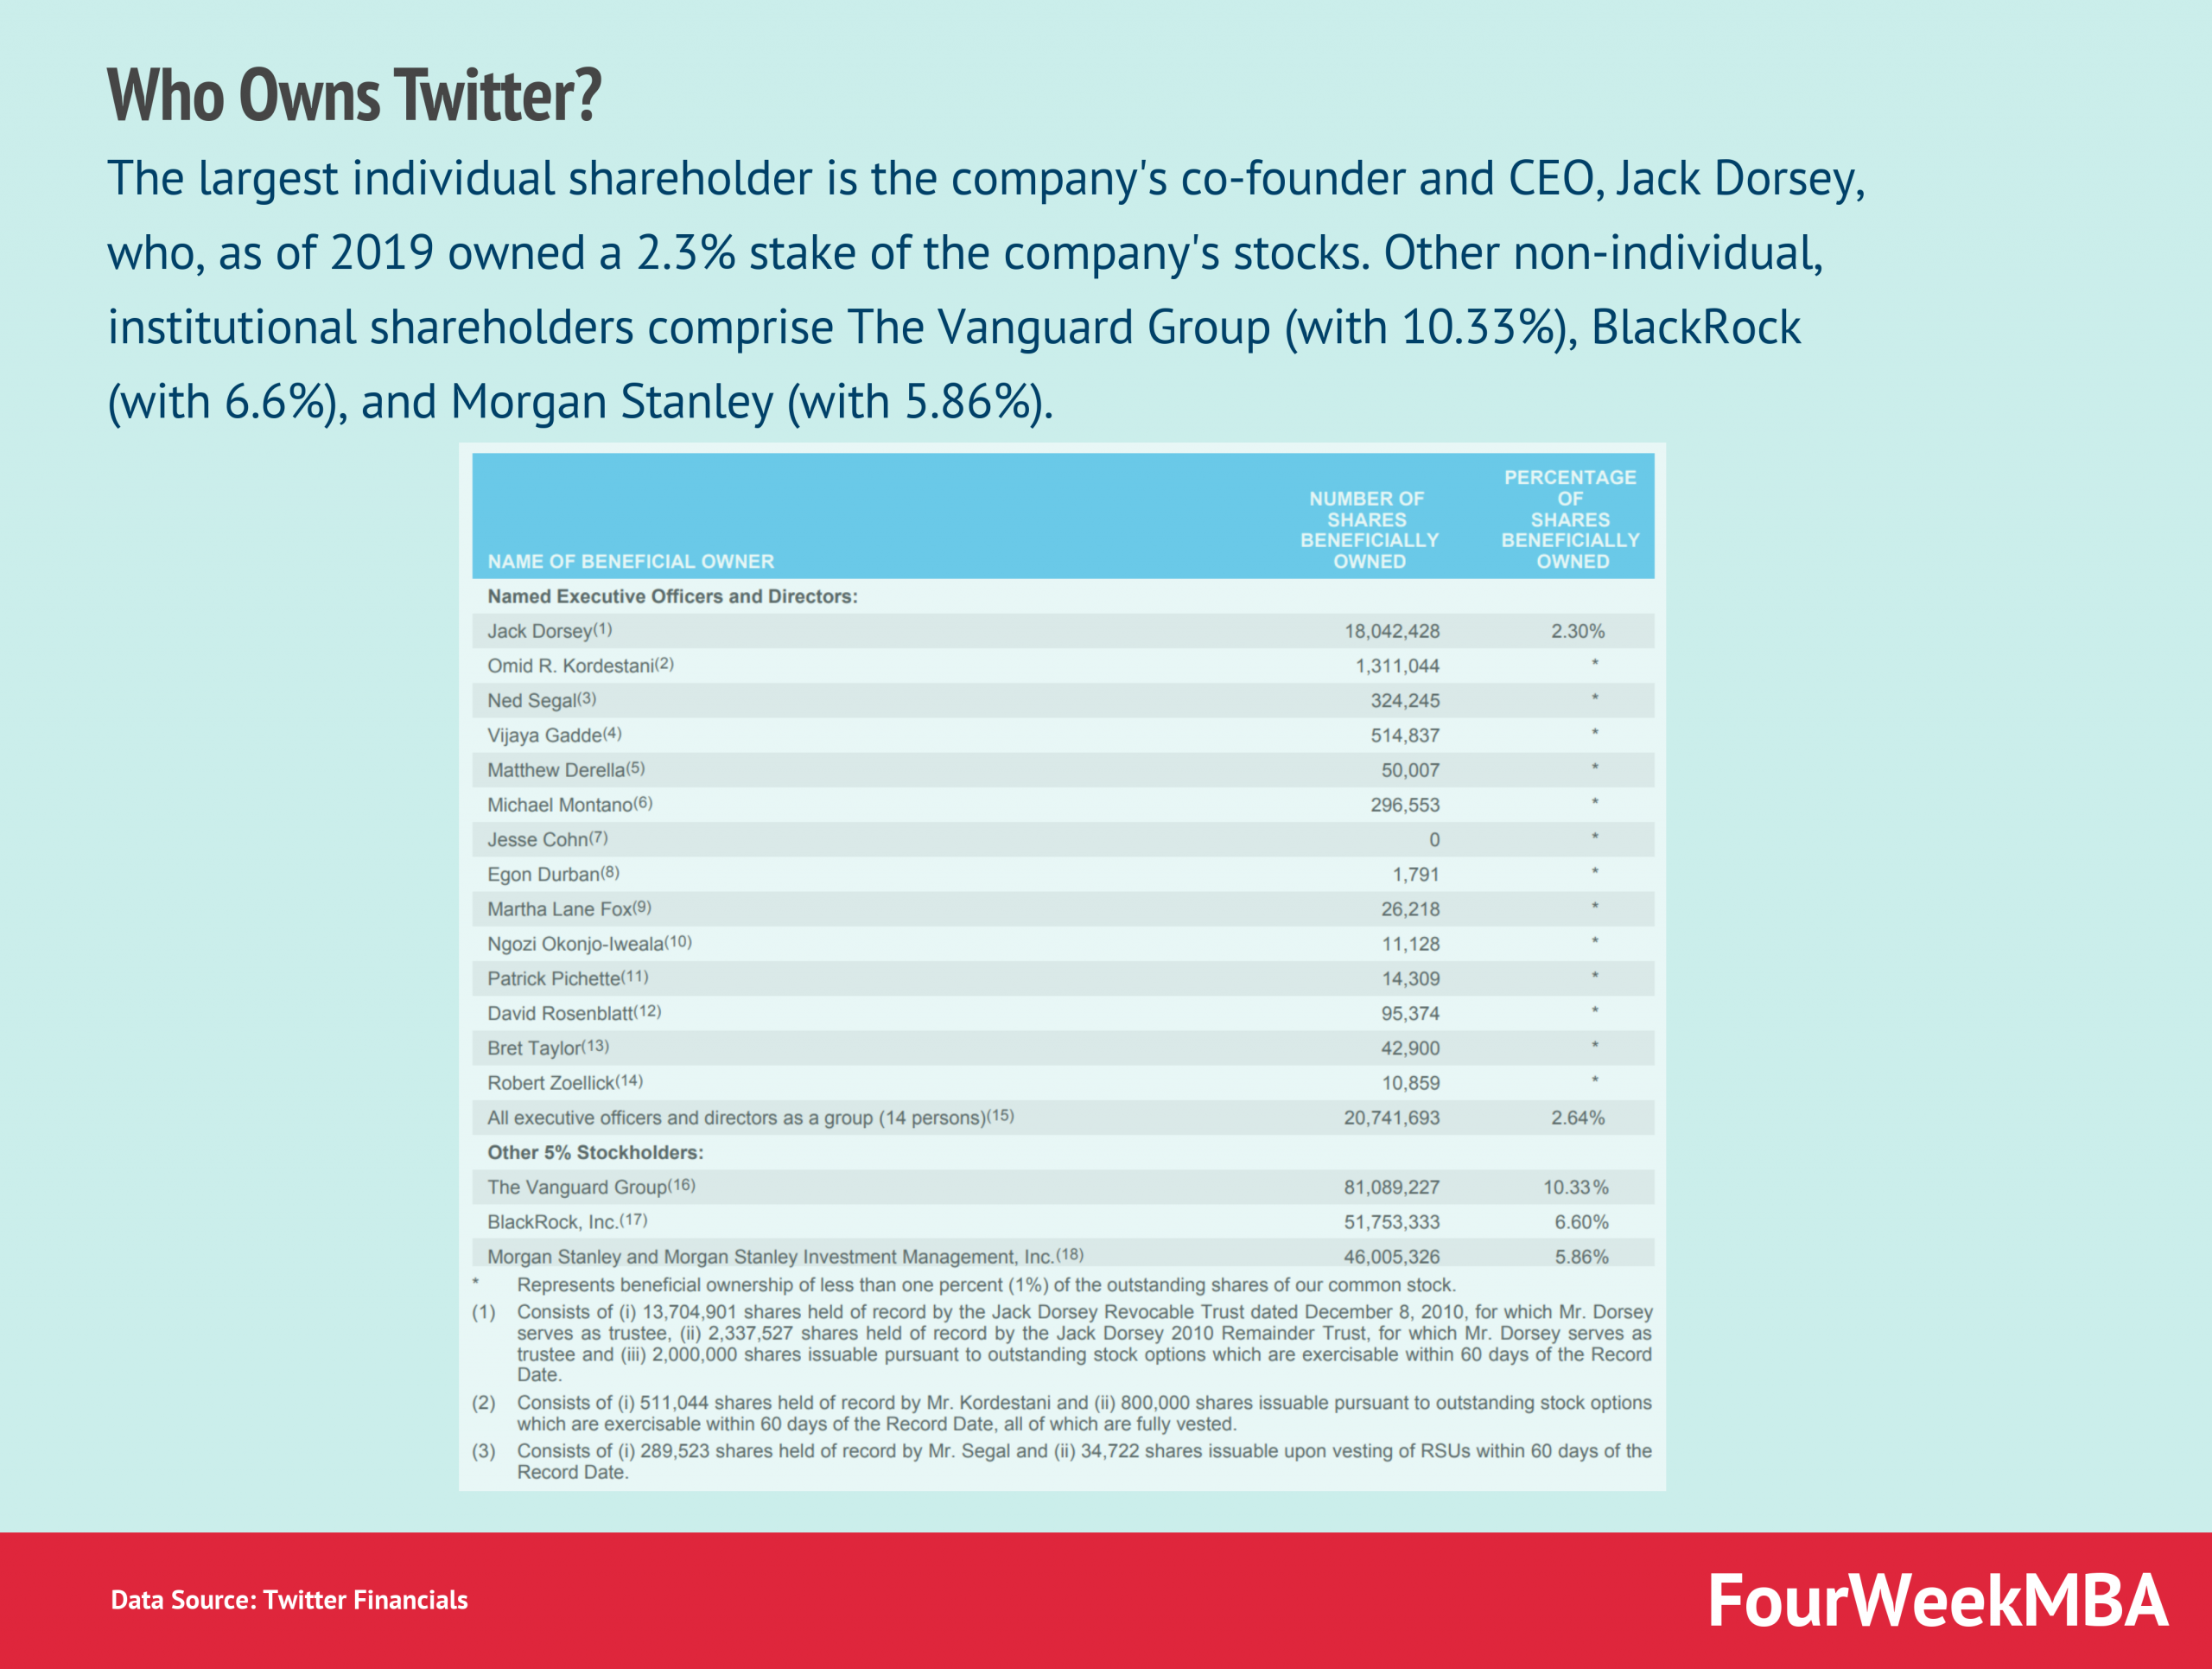 Who Owns Twitter?